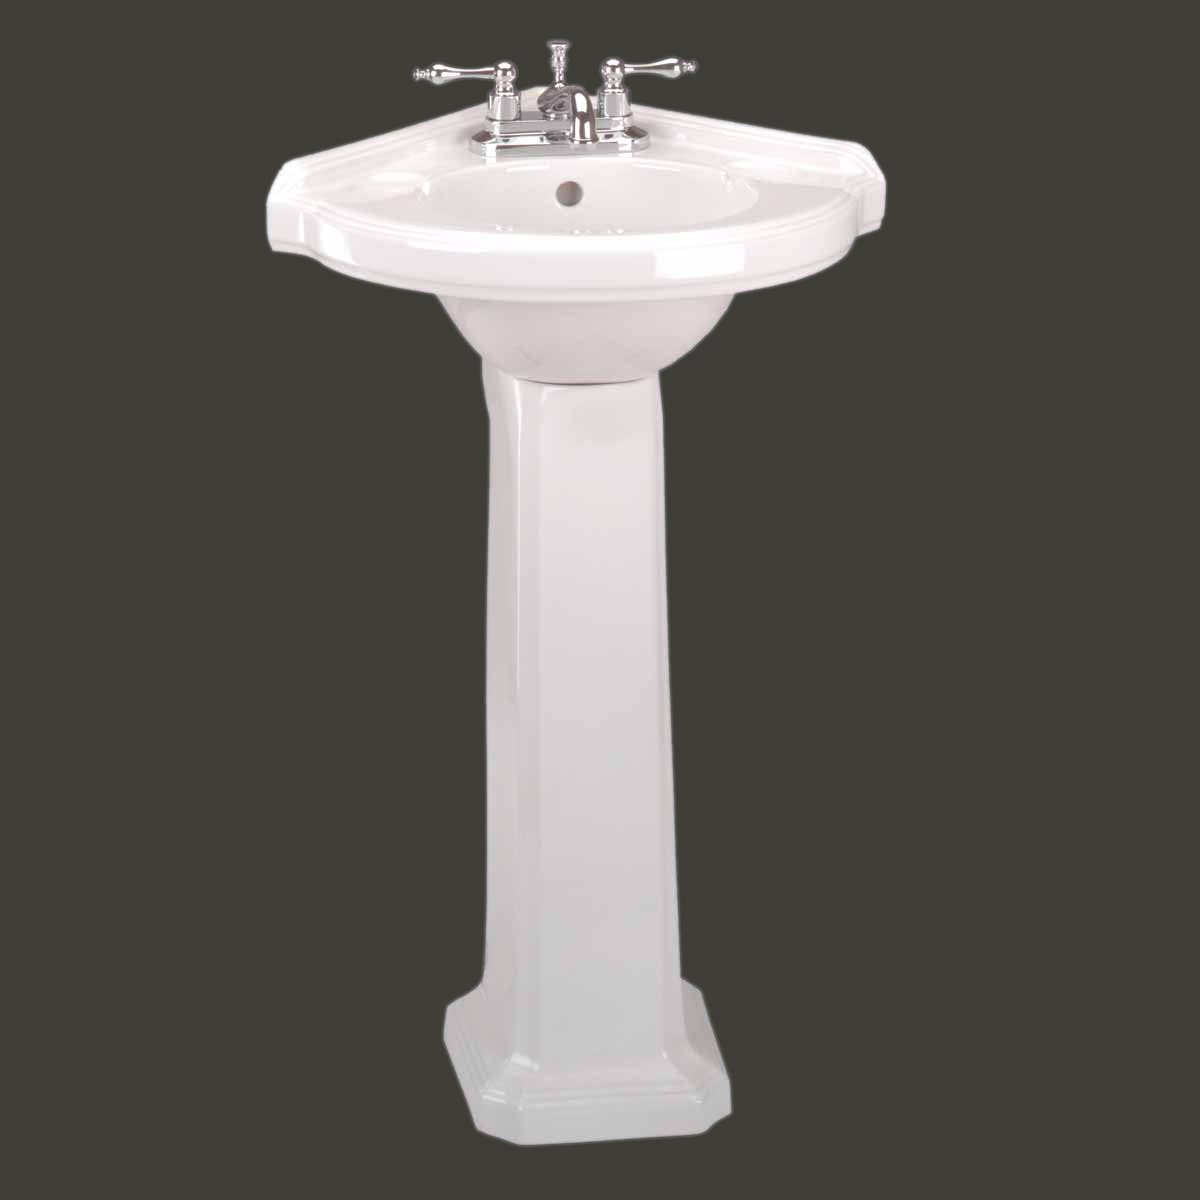 gleaminggoldalternative n pedestal bathroom sinks us browse kohler